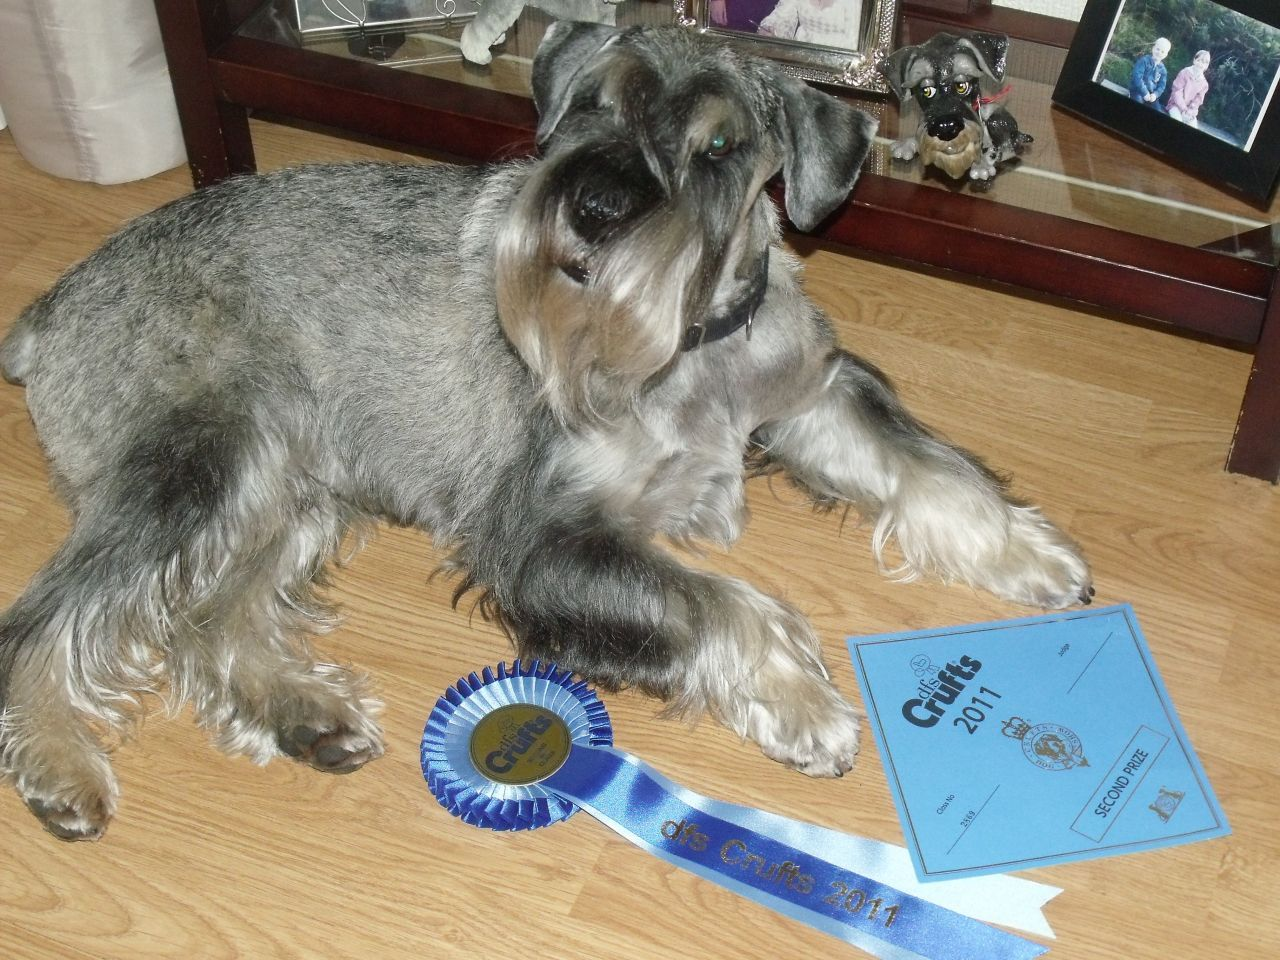 Standard Schnauzer Puppies For Sale Lochgelly Fife Pets4homes